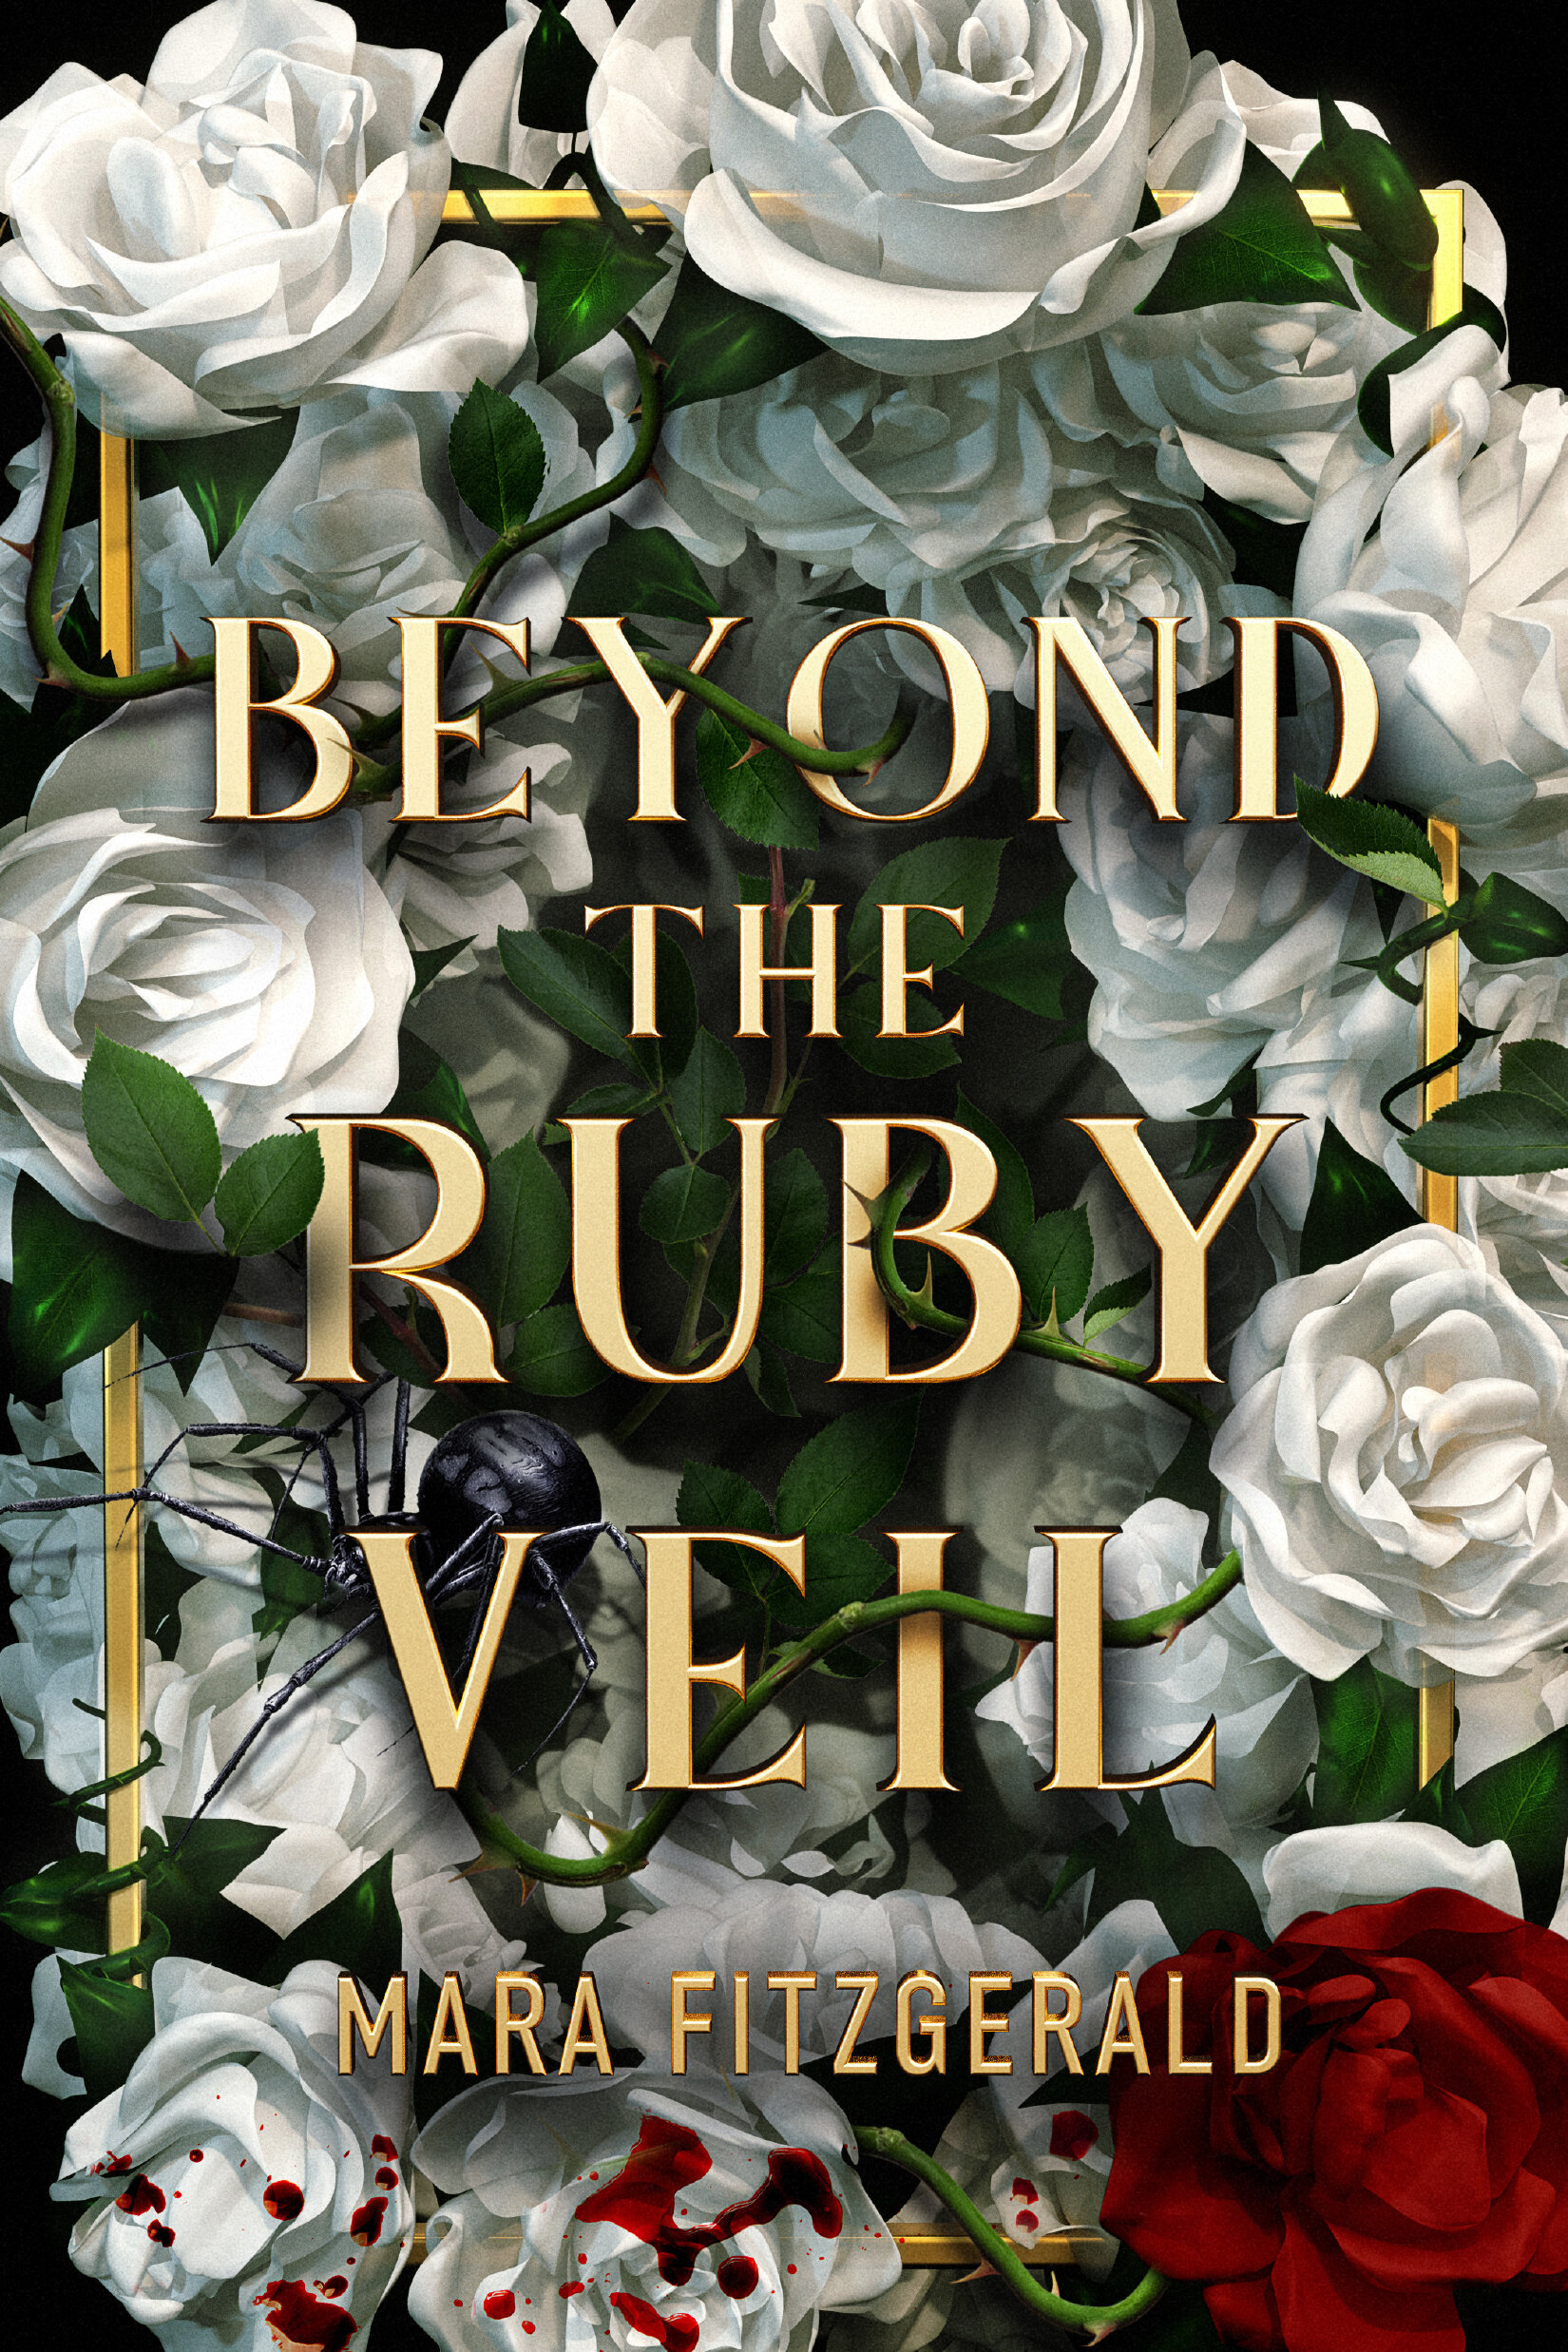 beyond the ruby veil cover